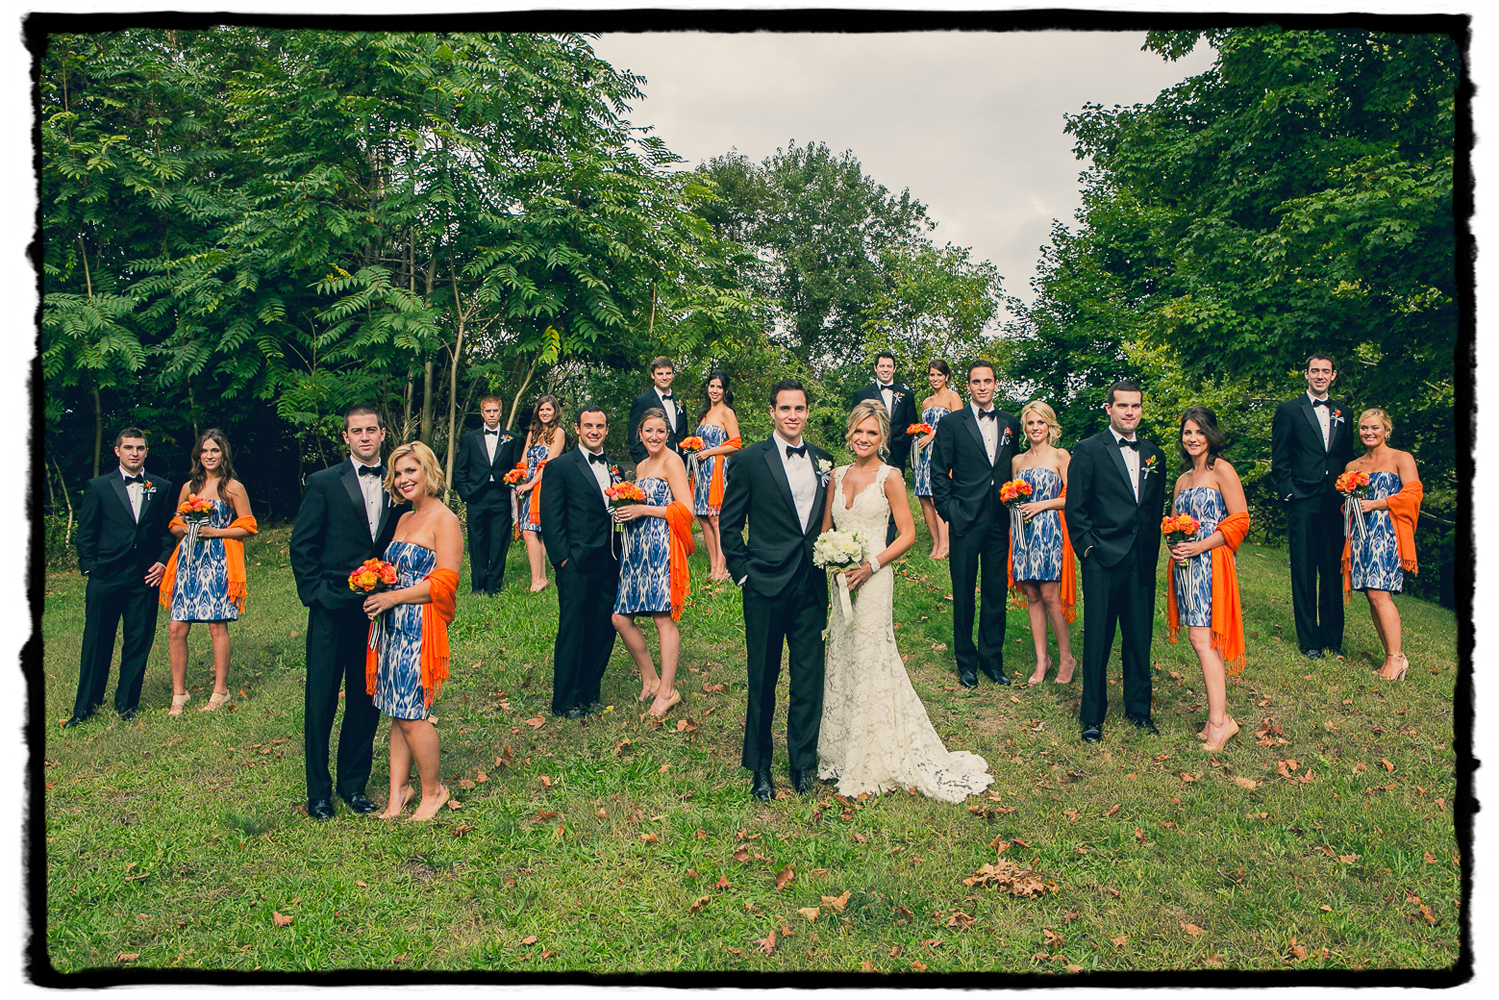 Patterned blue and orange paired with black tuxedos were the order of the day for Devin & Mike's wedding at Belle Haven Club in Greenwich, CT.